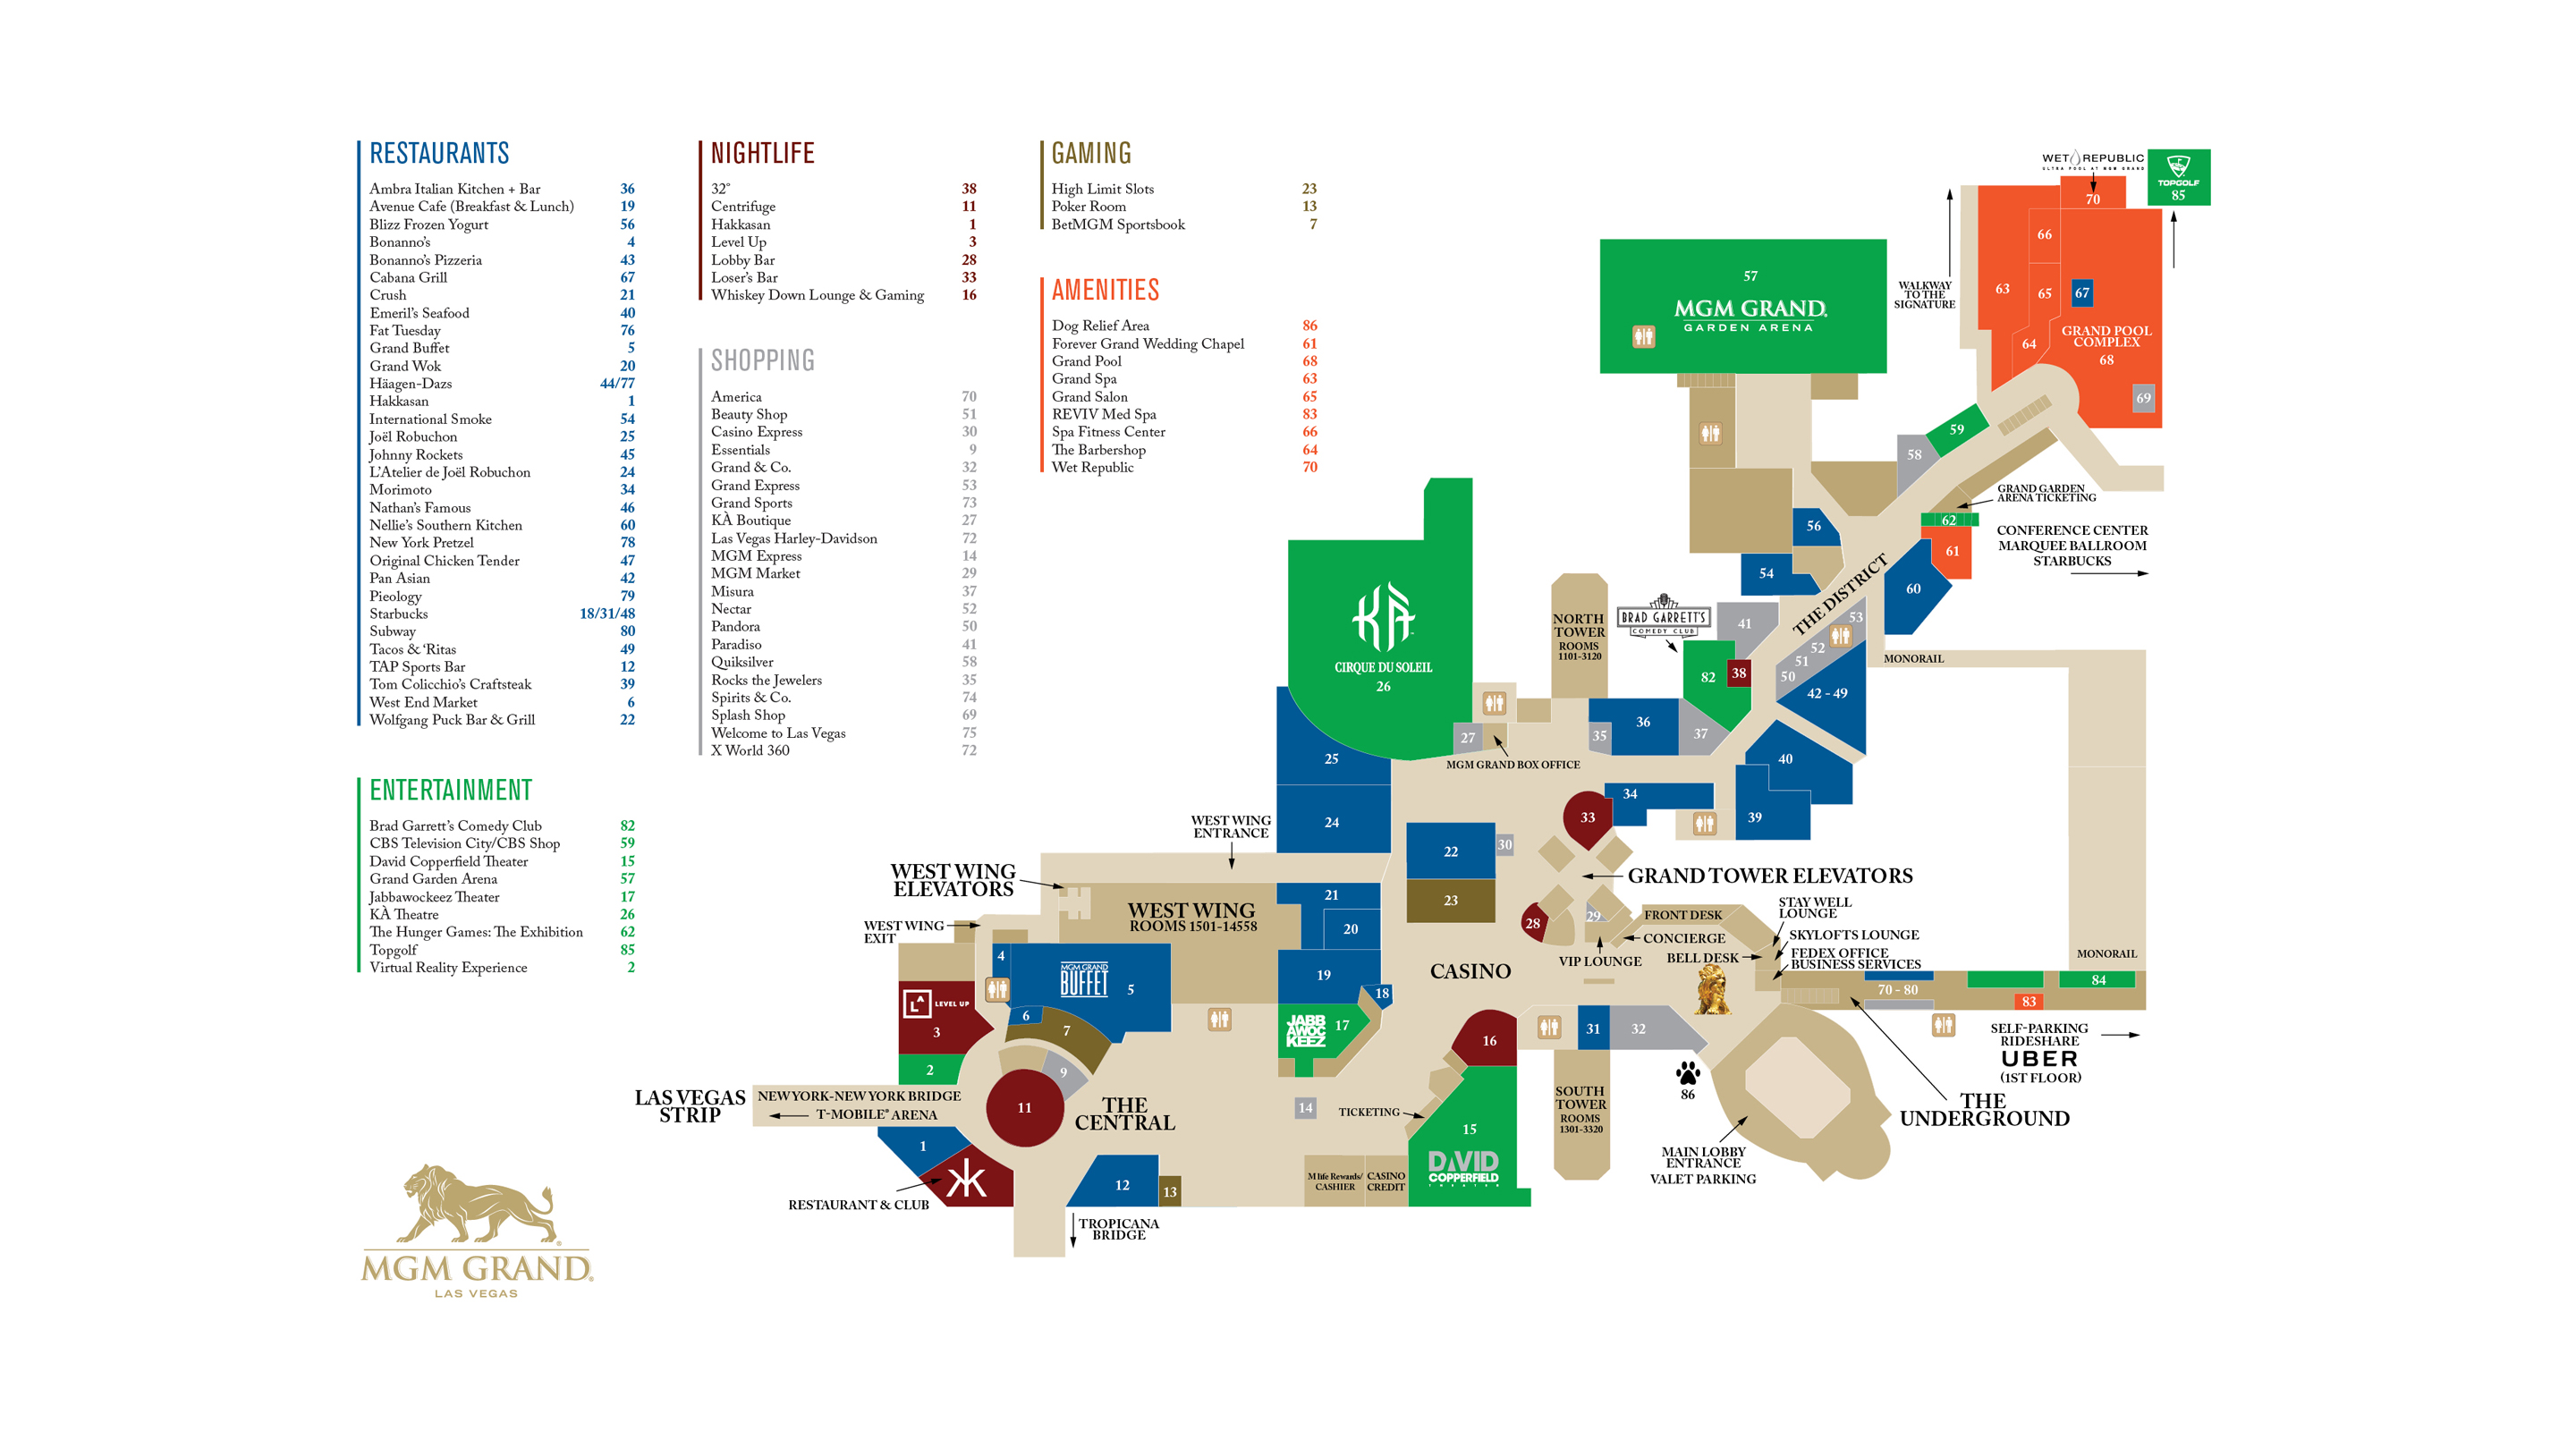 Mgm Grand Floor Plan Map | TheFloors.Co